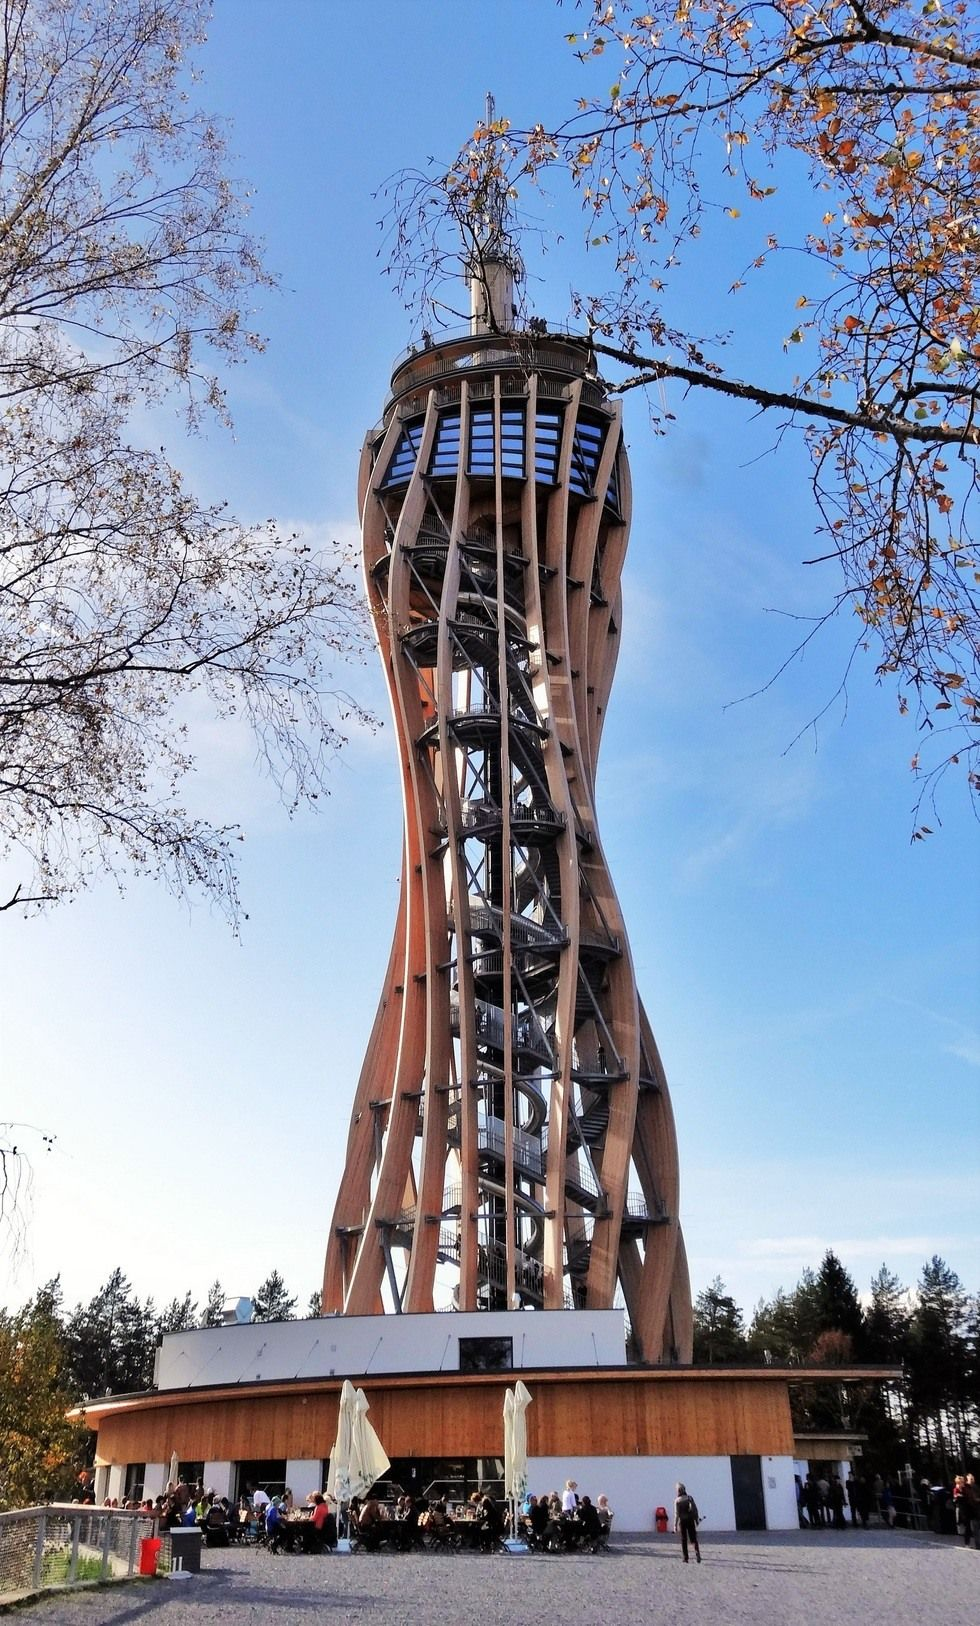 Pyramidenkogel Observation Tower This spire on an Austrian mountain is wrapped around a long spiral slide and has the world's tallest wooden observation deck.